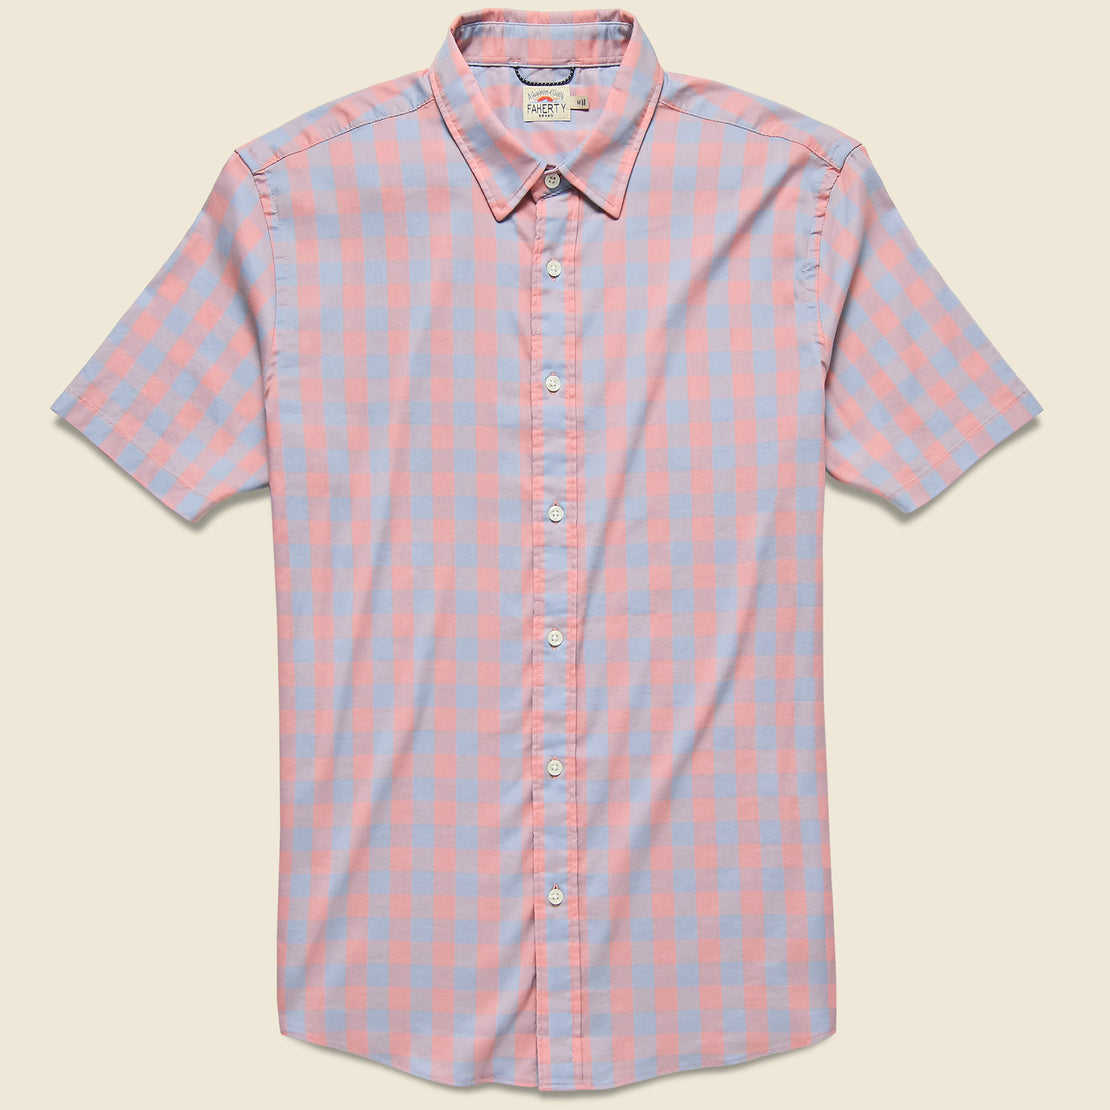 Faherty Movement Shirt - Blue/Rose Check